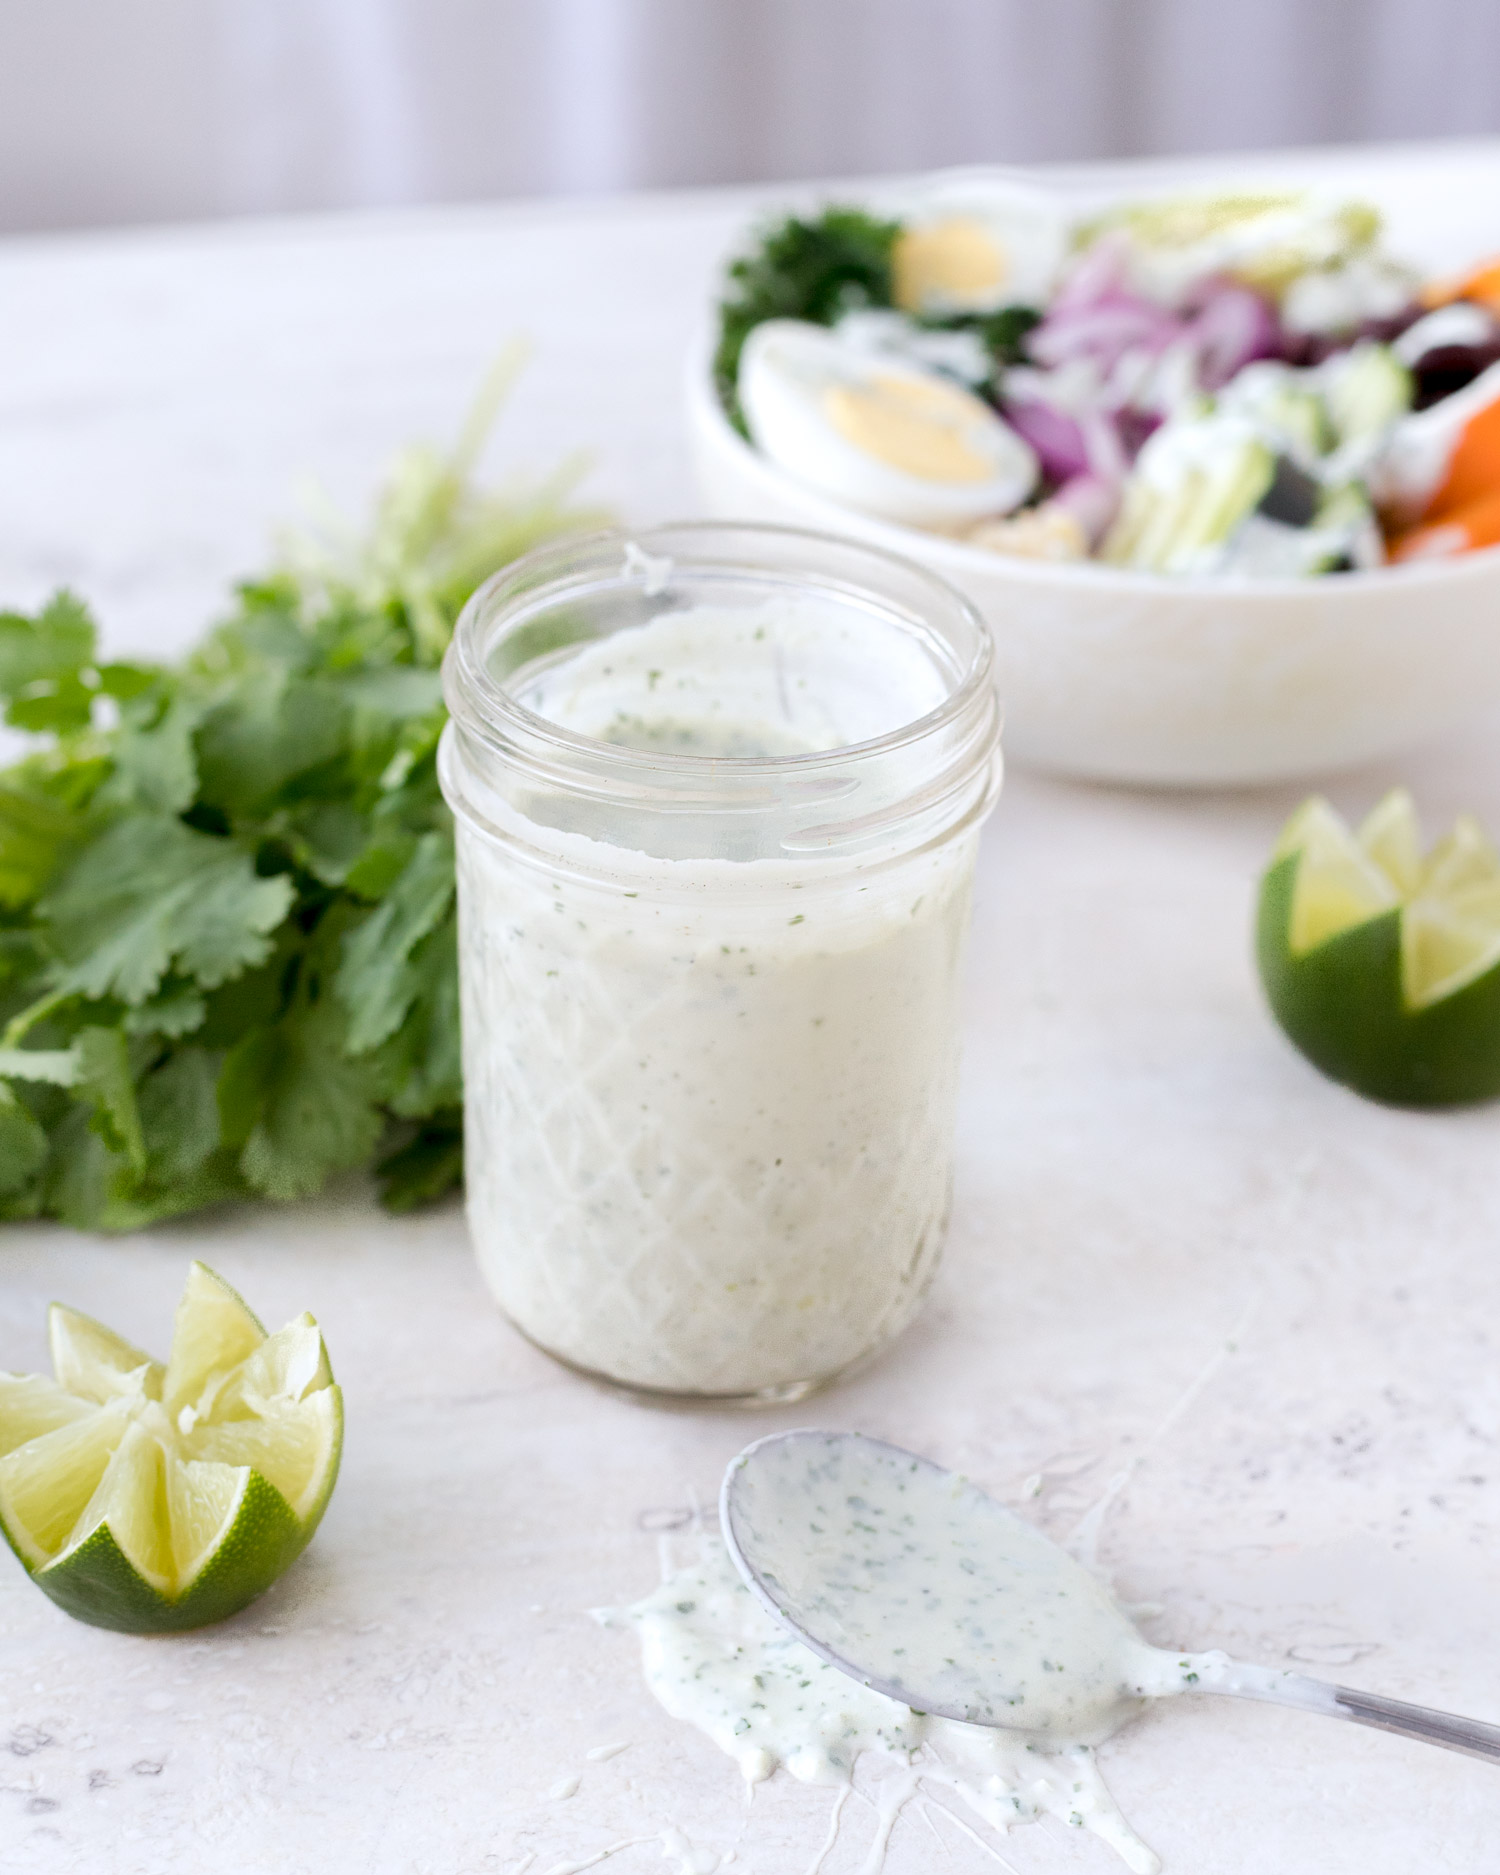 Greek yogurt sauce that's made with cilantro and lime for a tangy sauce that's perfect for dressing salads or topping tacos. Greek Yogurt Dressing. Elle Talk #Dressing #SauceRecipe #GreekYogurtRecipe #SaladRecipe #Cilantro #LimeJuice